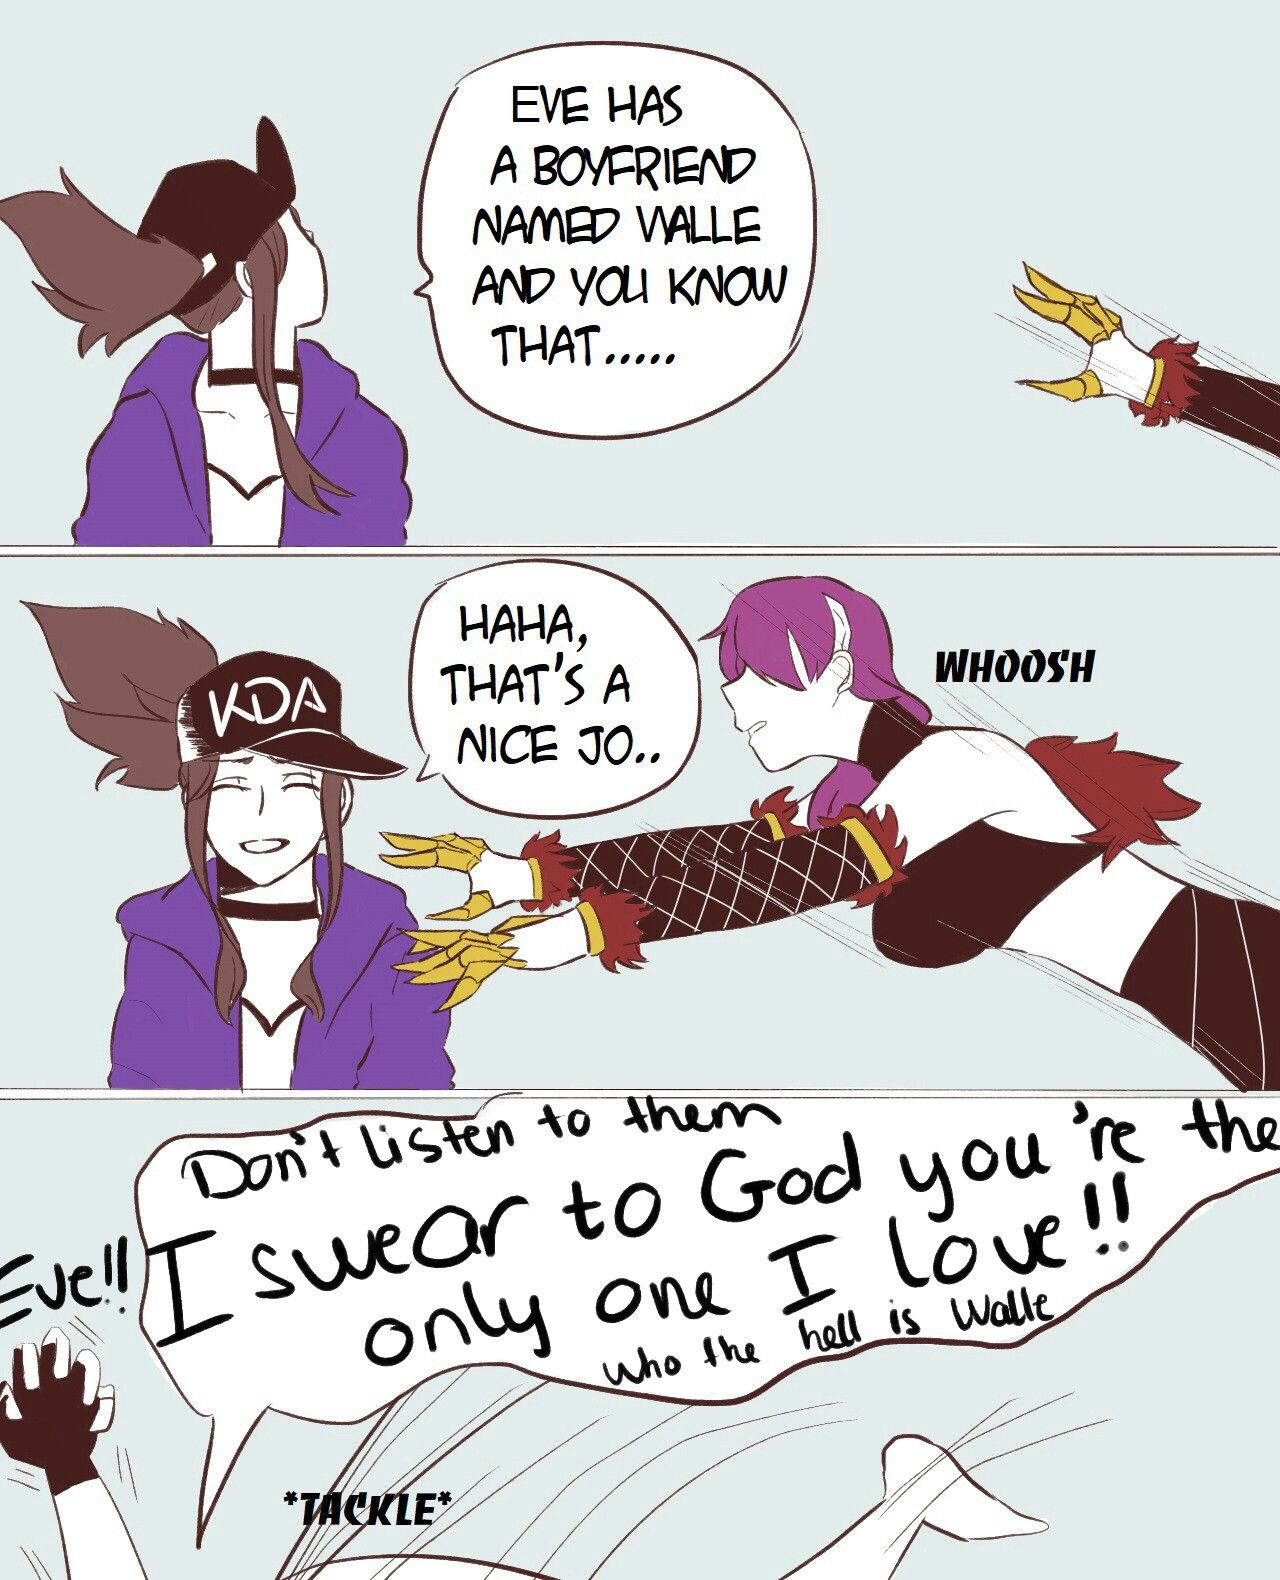 Pin By User 2845 On Akali Art And Other Kda Pop Star Art And Ships Lol Lol League Of Legends League Of Legends Comic League Of Legends Memes